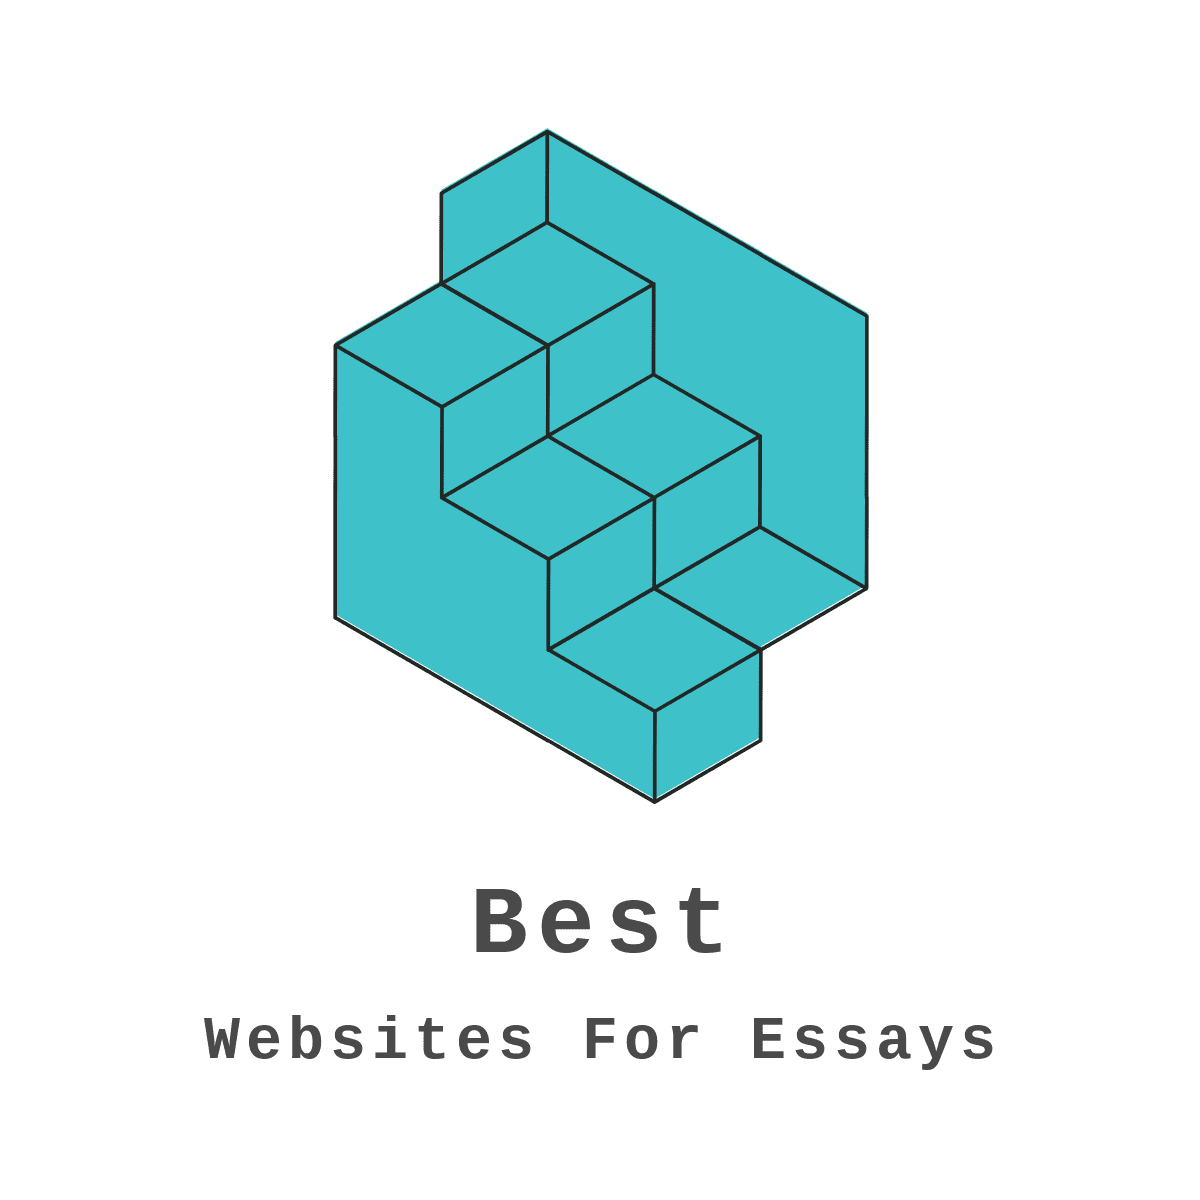 bestwebsitestowriteessays.com